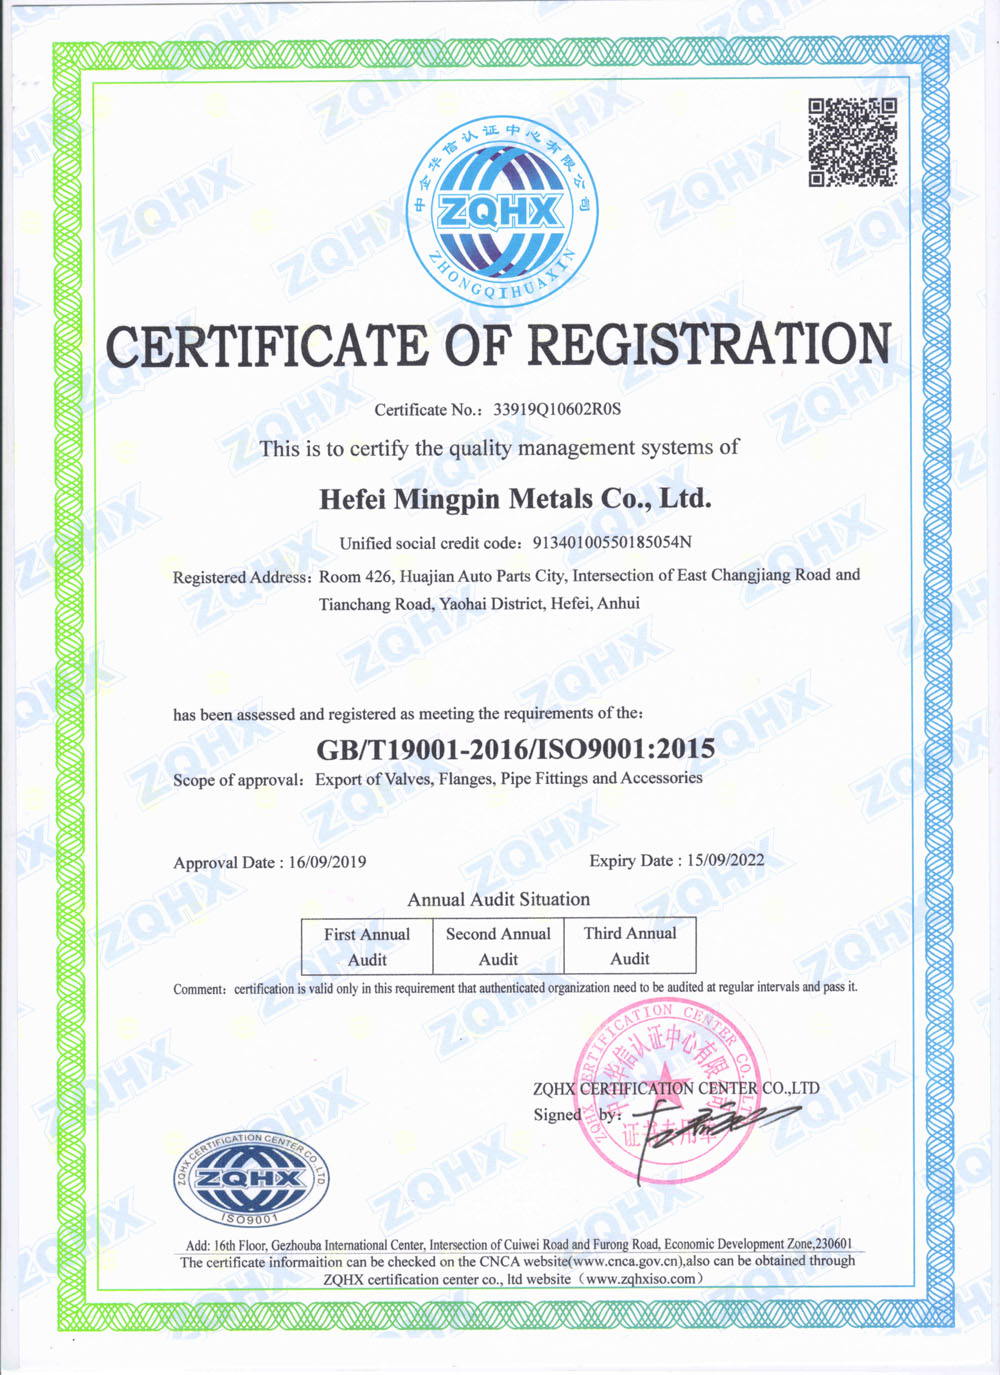 Our Quality Management System ISO9001:2015